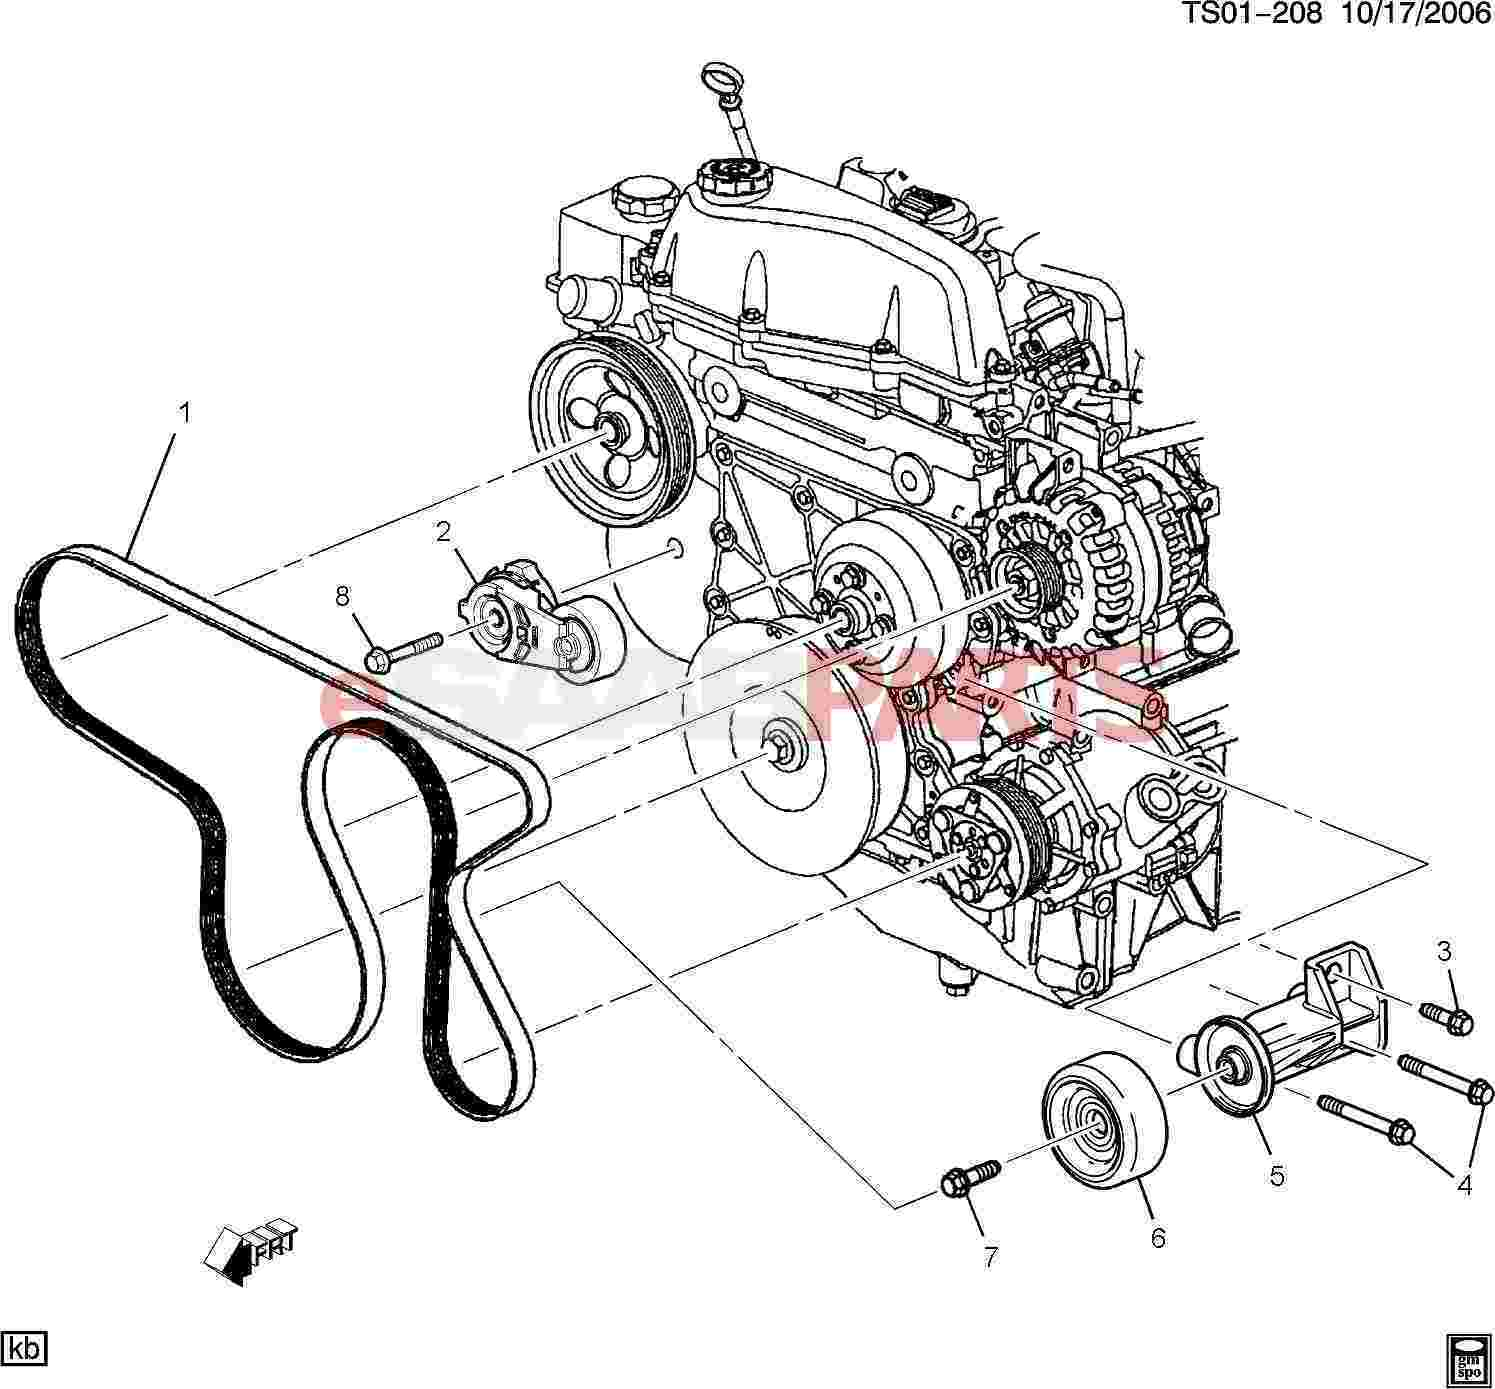 3 2 Chrysler Engine Diagram Not Lossing Wiring 2004 Sebring 1999 Dodge 4 Simple Rh 28 Mara Cujas De 2001 5 38